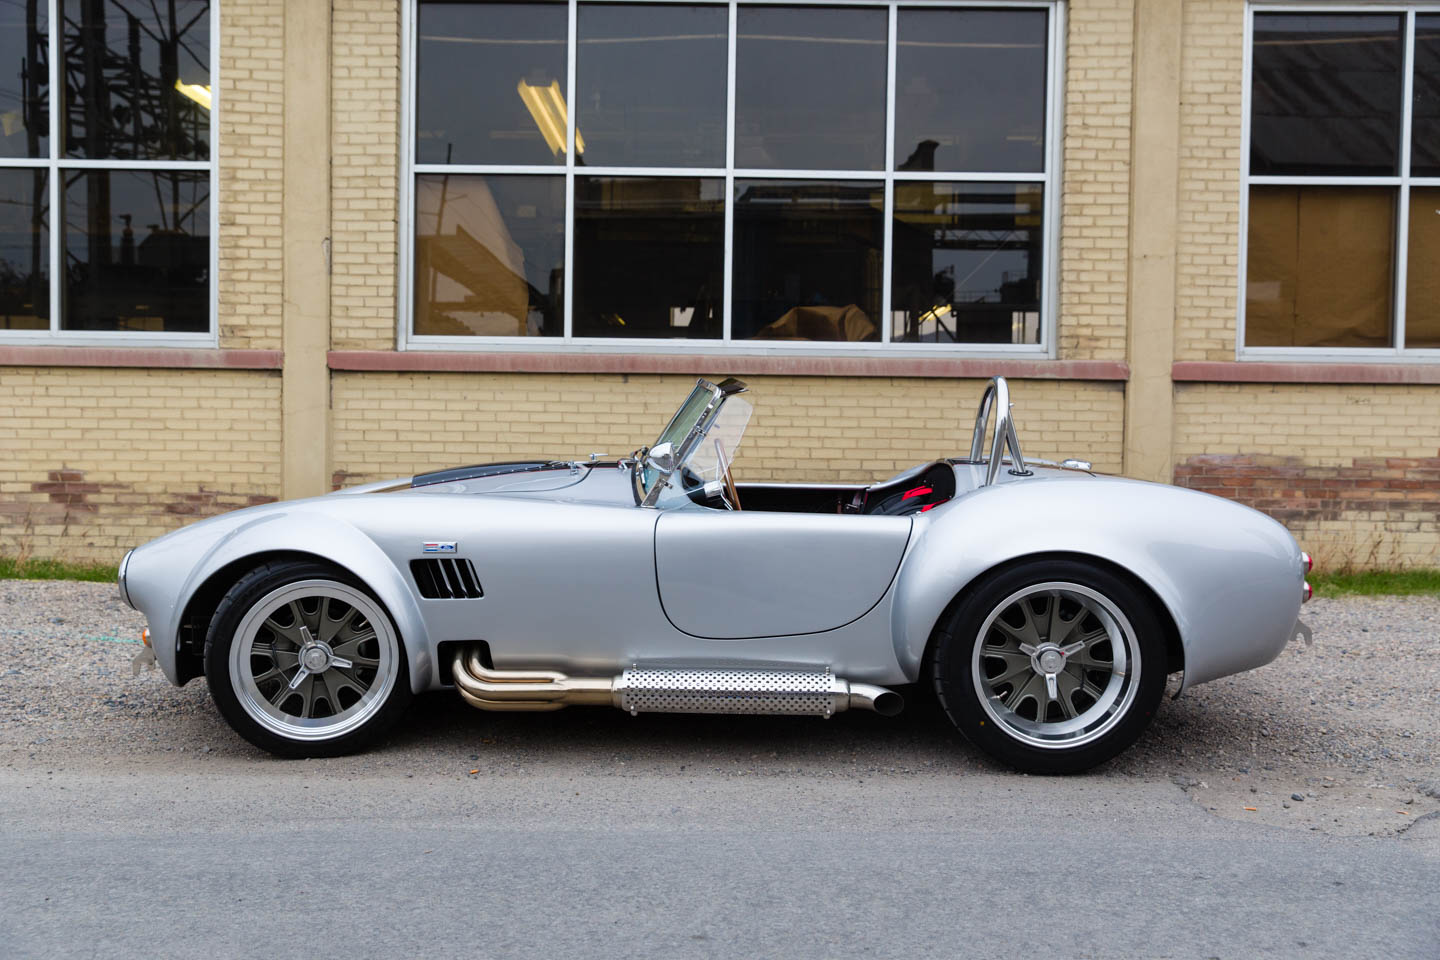 Trying some natural light photos of the Shelby Cobra